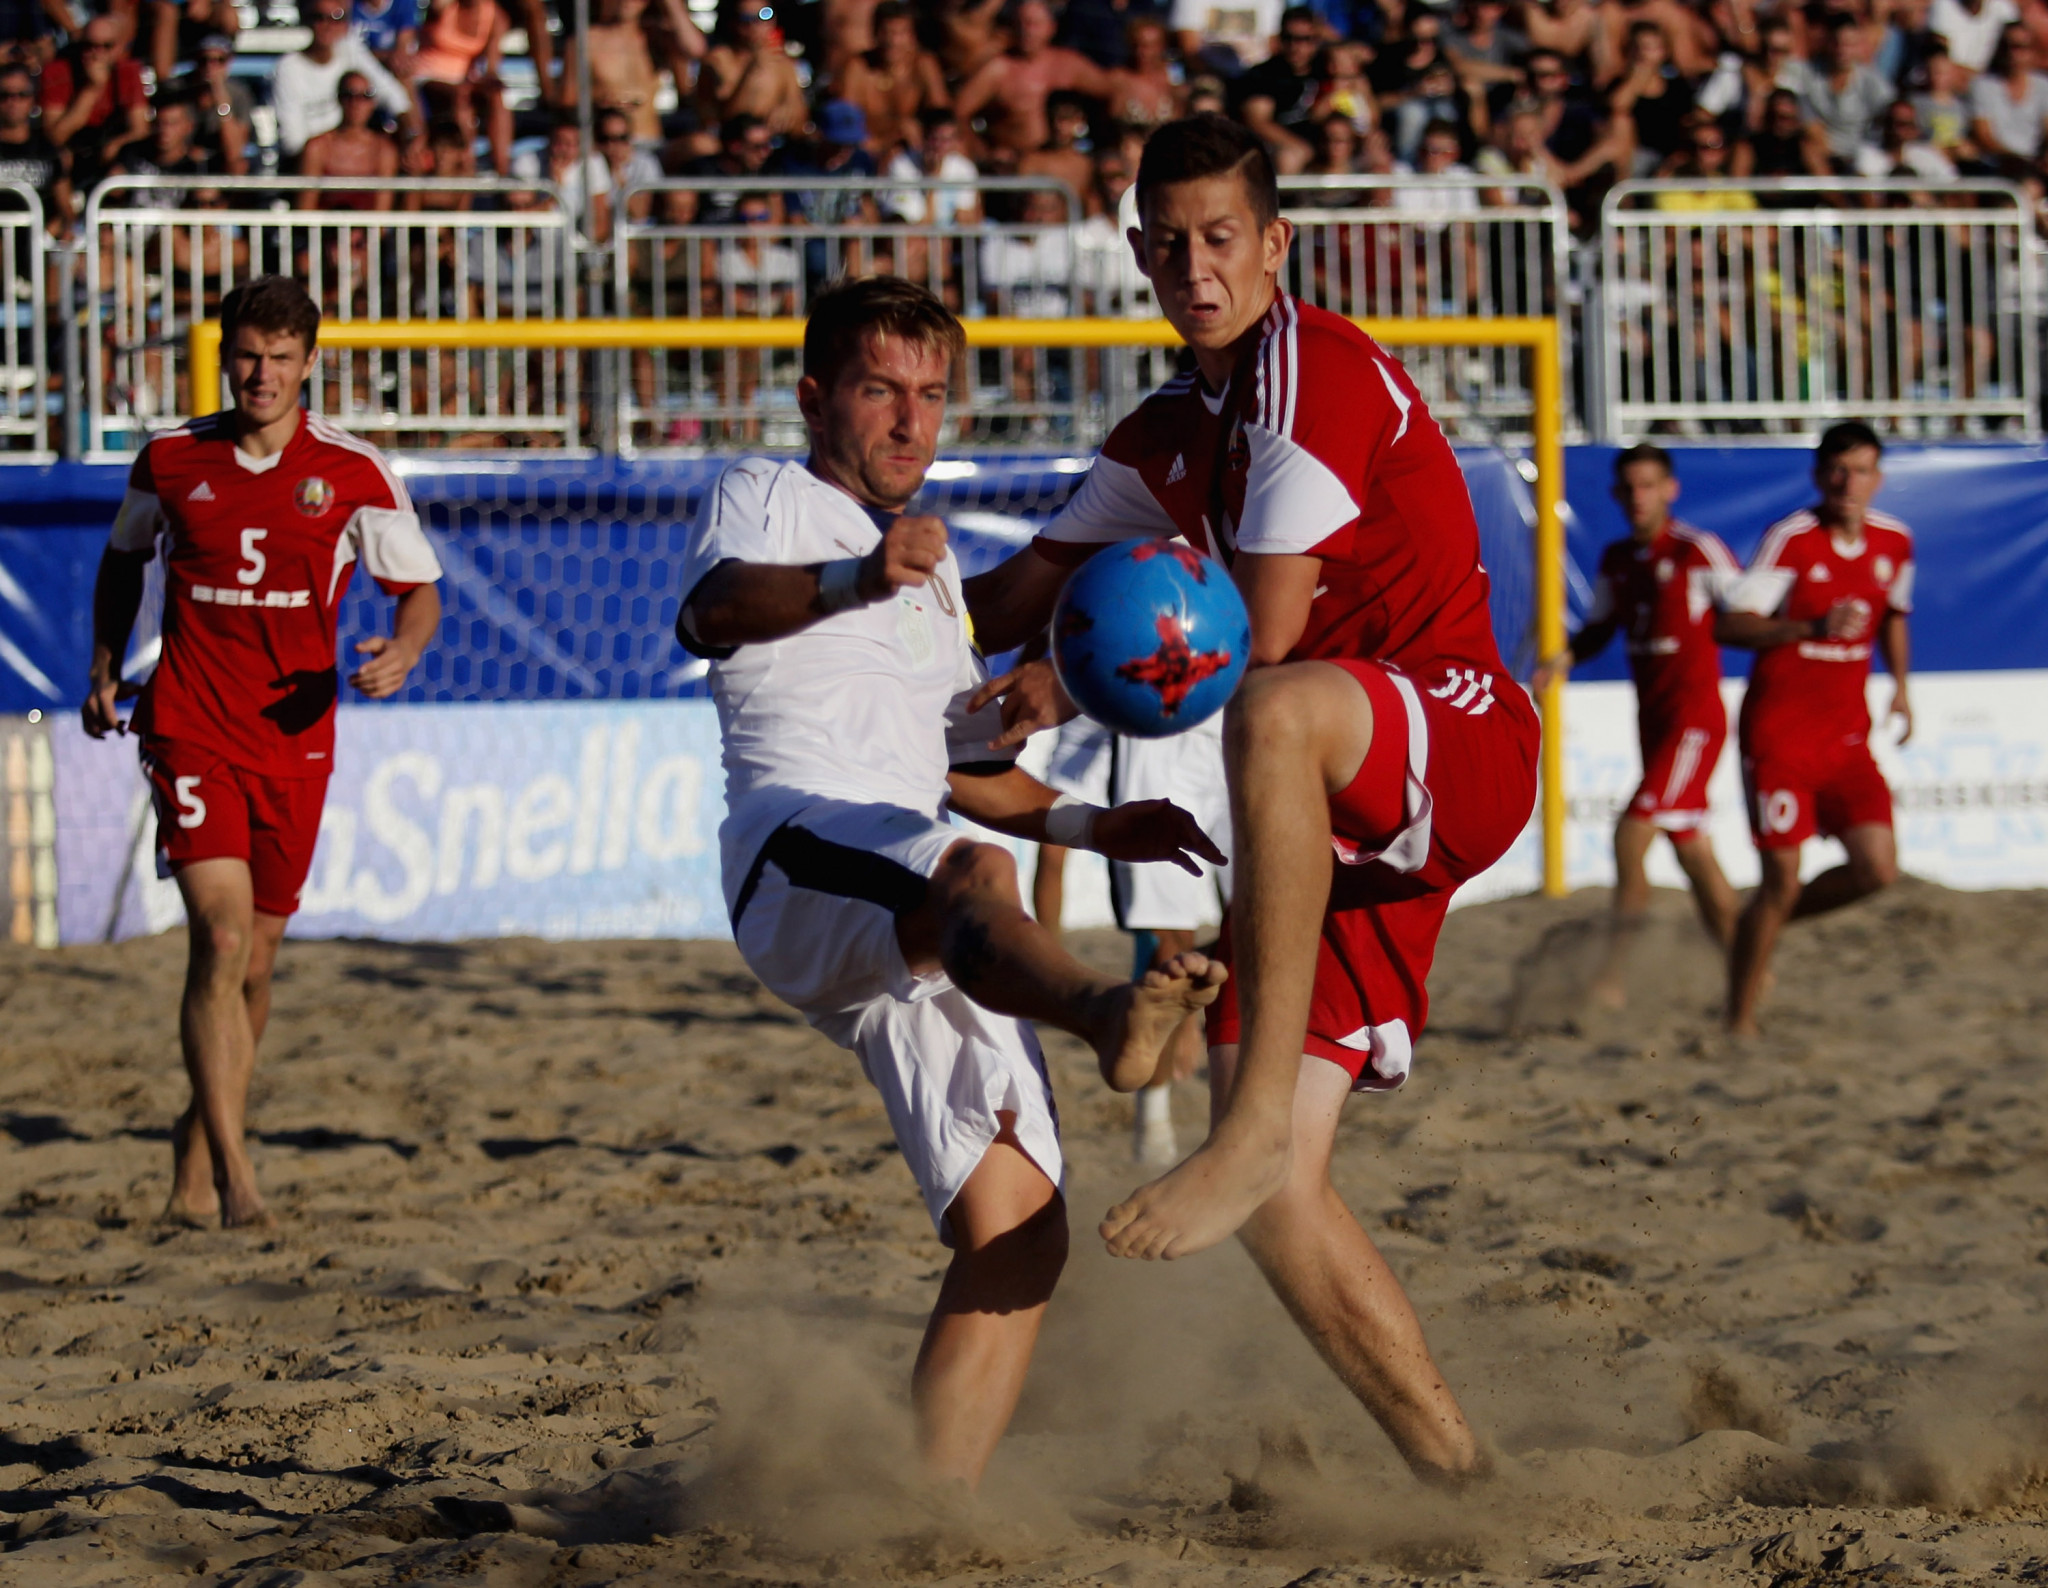 Belarus's Ivan Miranovich, right. helped conduct the draw for the Minsk 2019 beach soccer tournament ©Getty Images